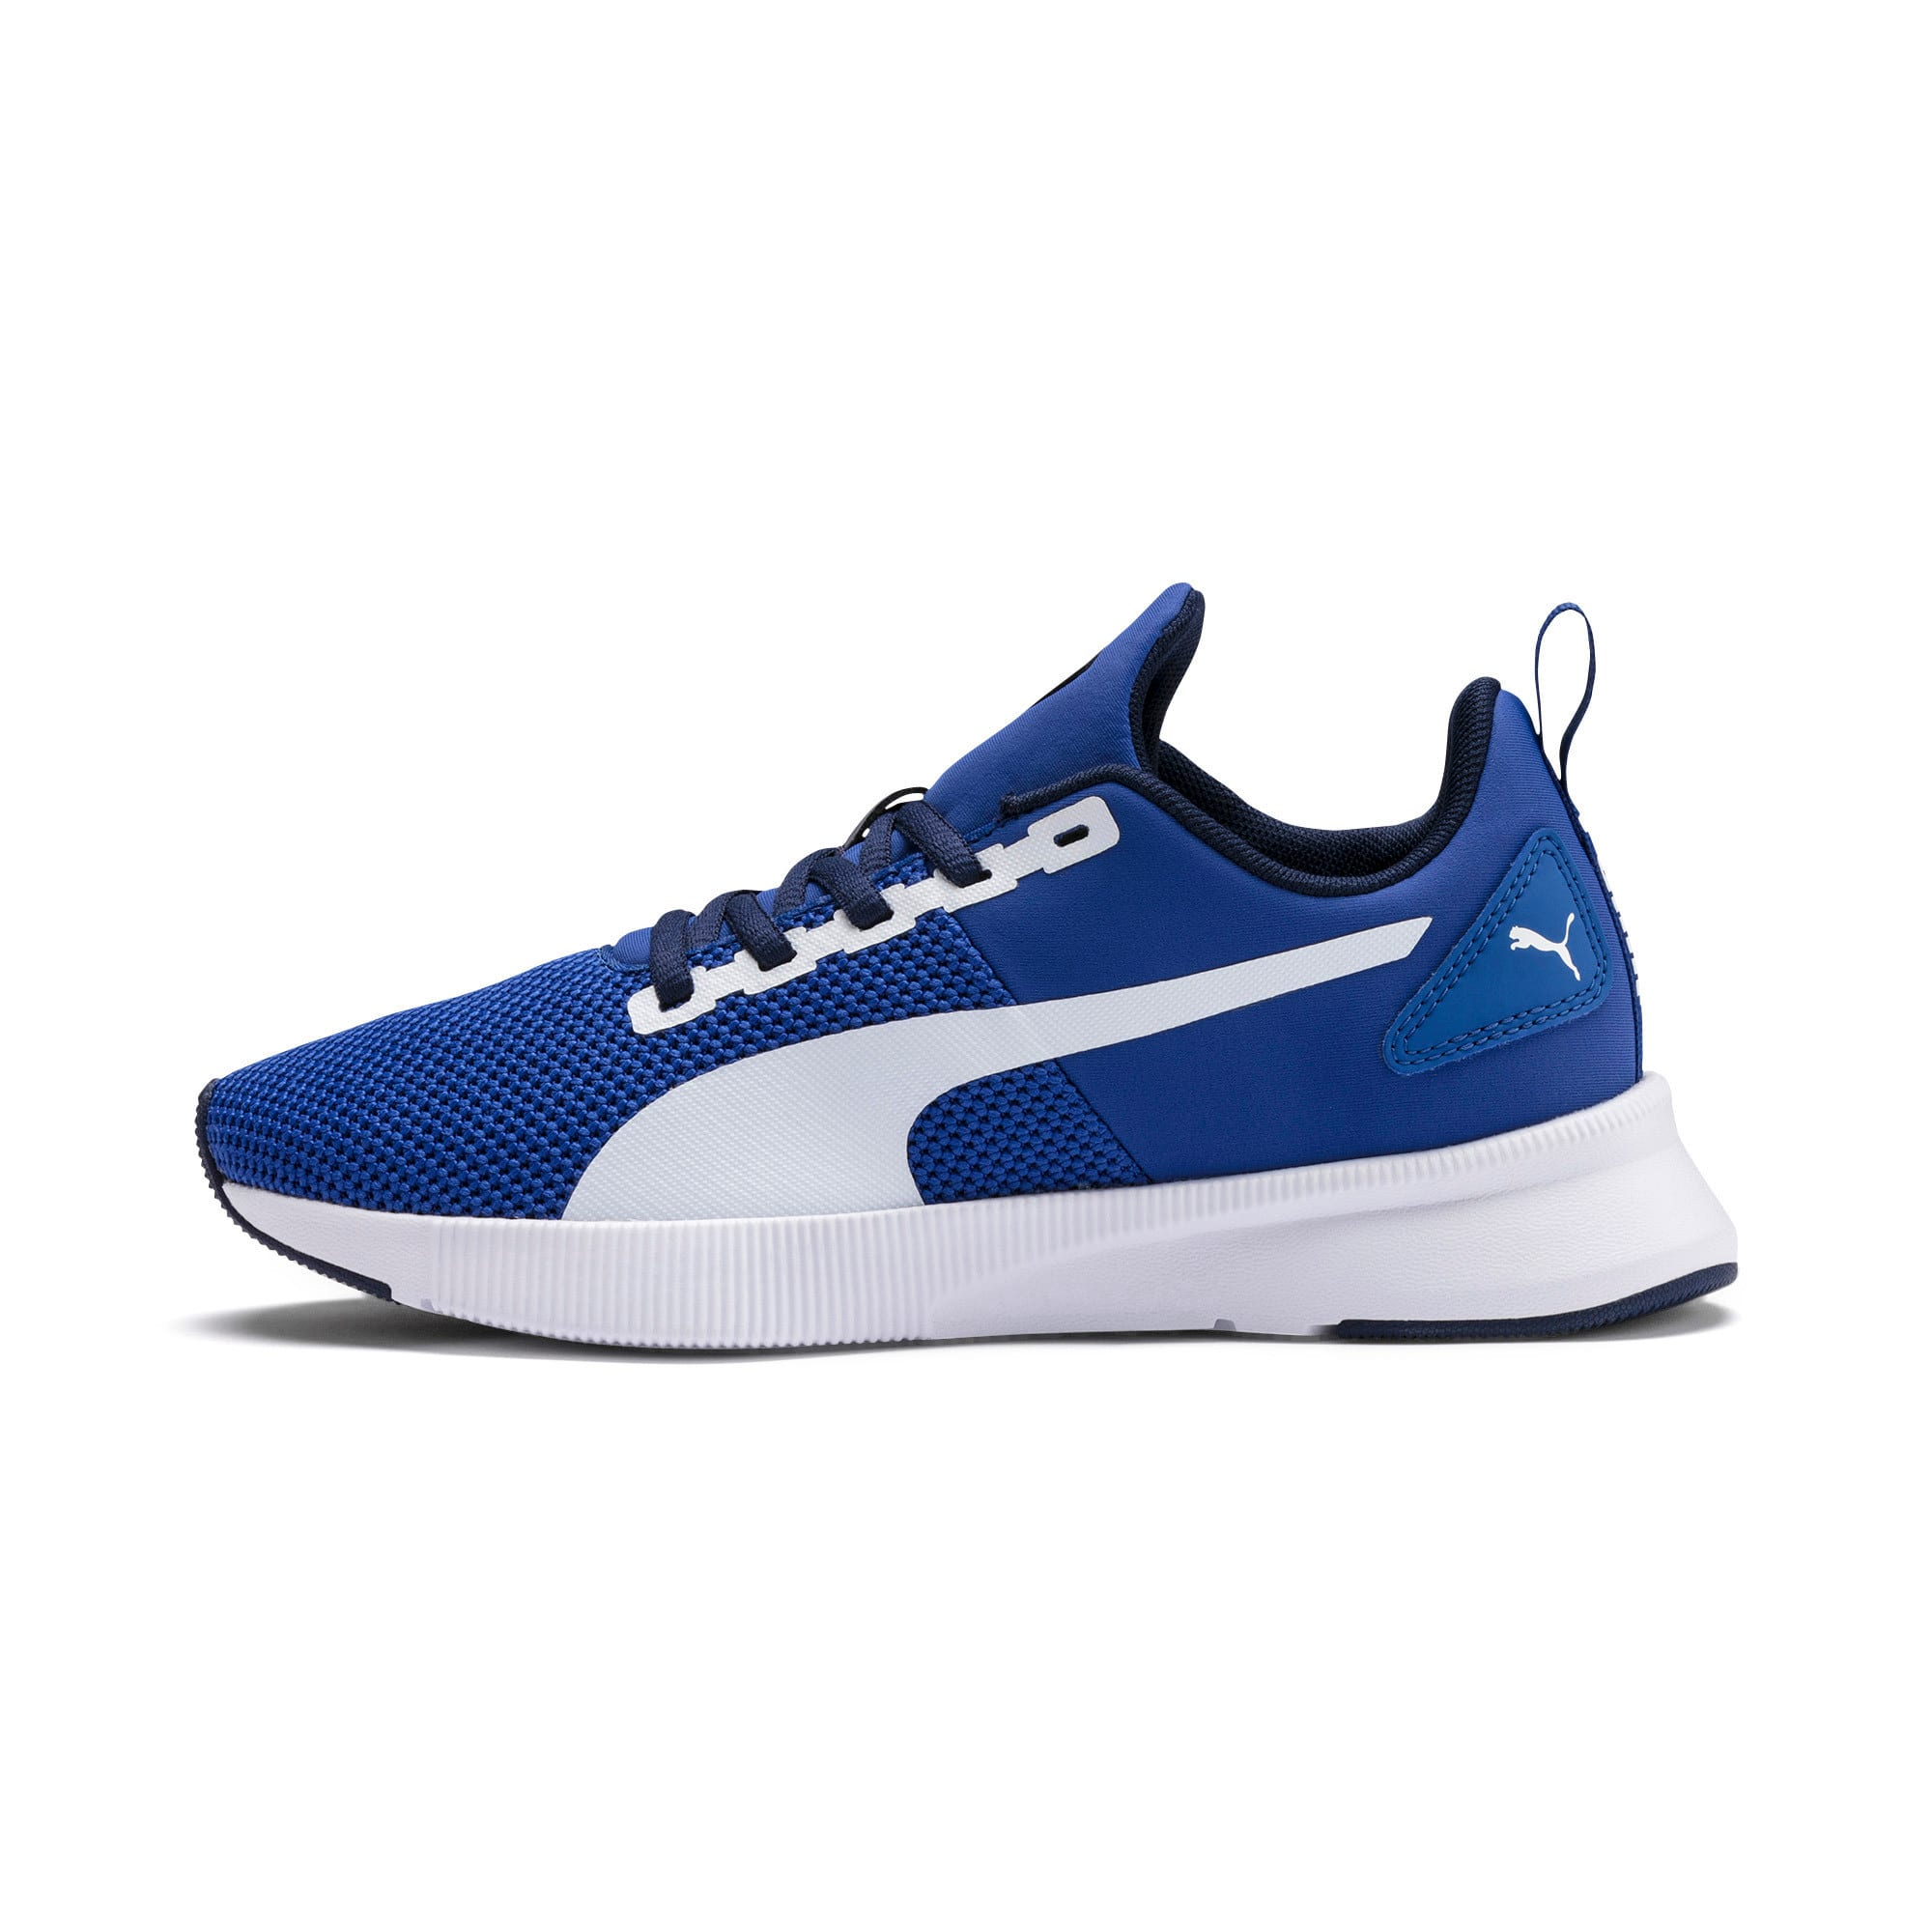 Thumbnail 1 of Flyer Runner Youth Trainers, Galaxy Blue-White-Peacoat, medium-IND